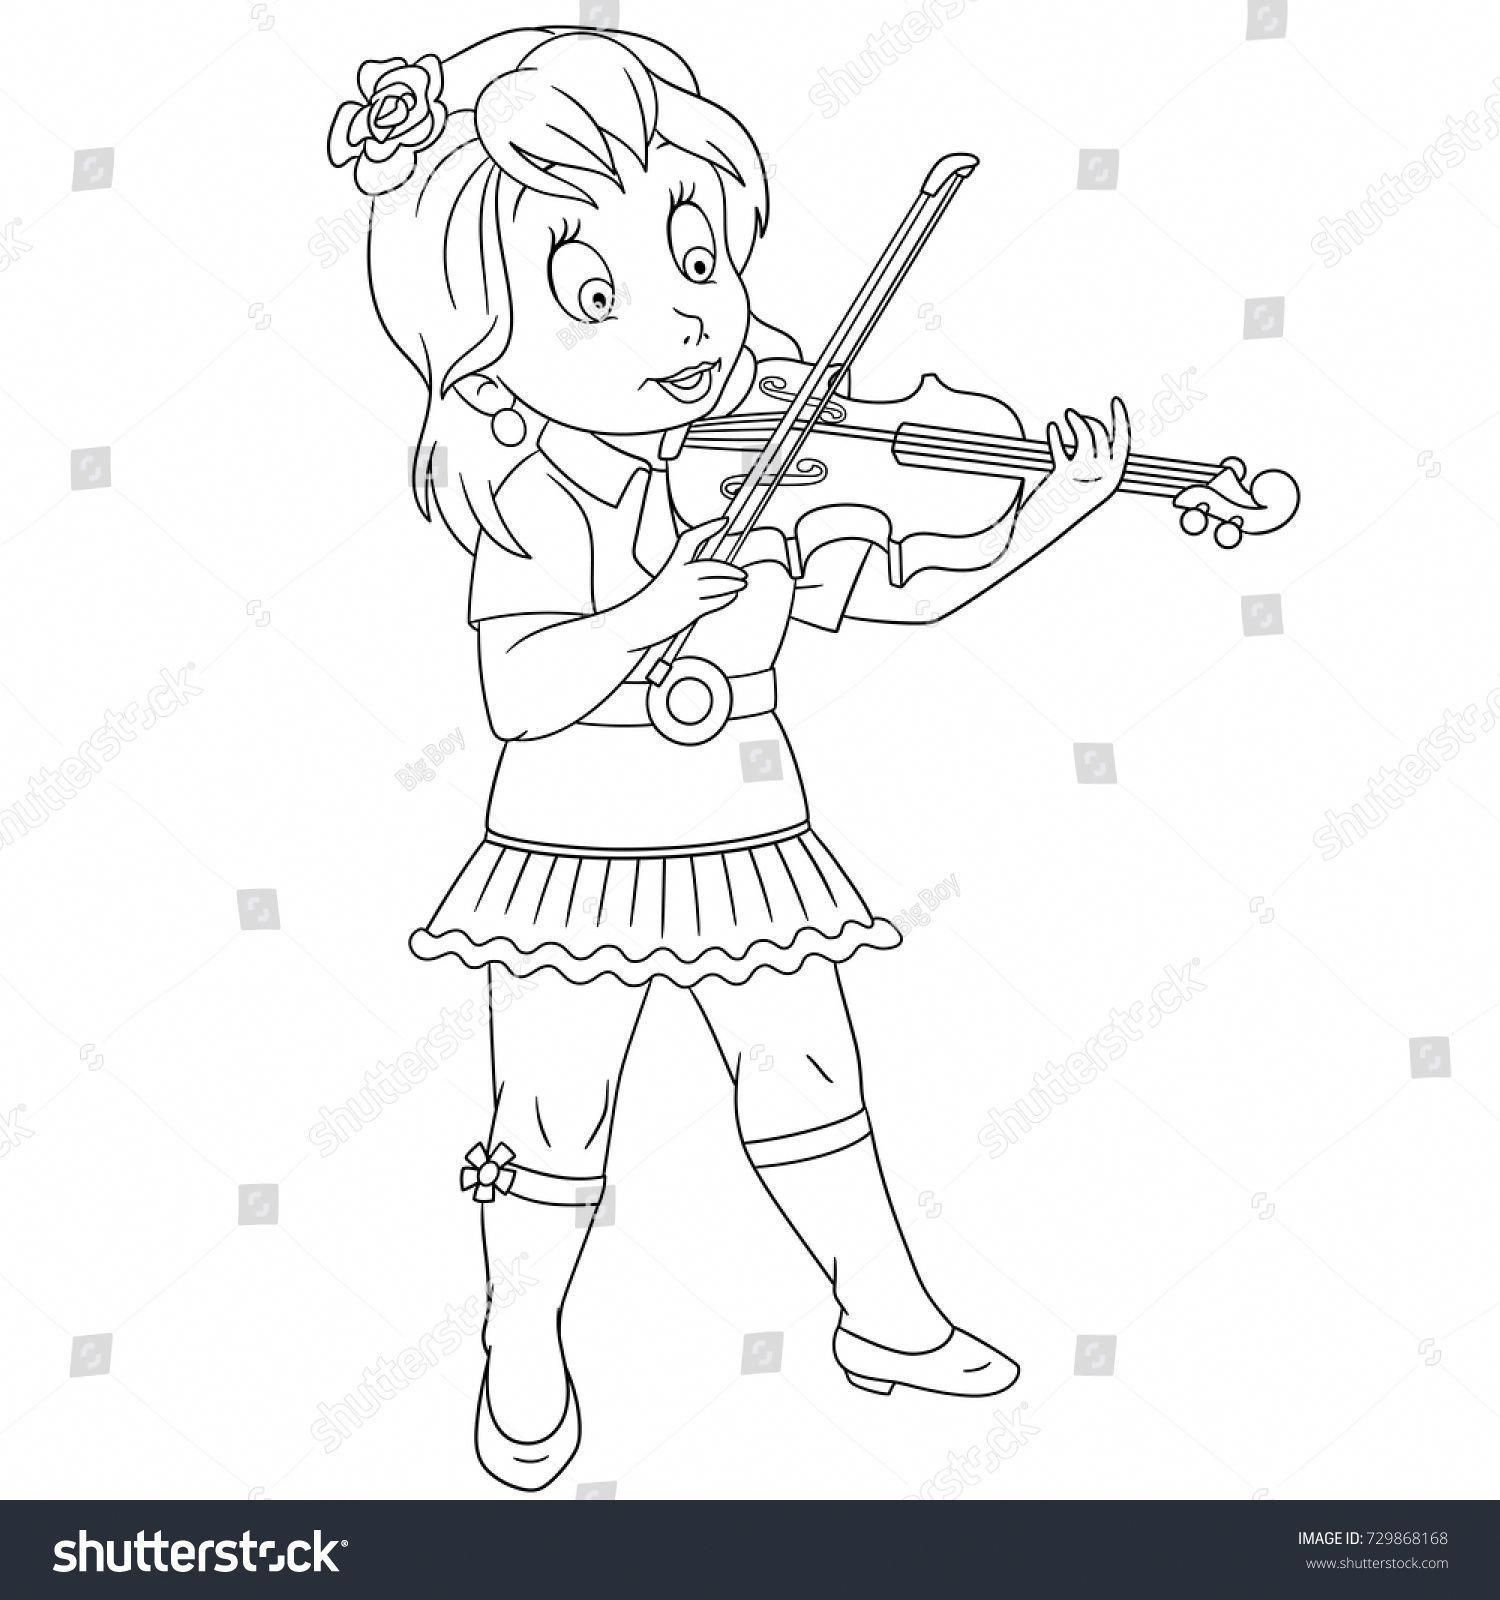 Coloring Page Of Cartoon Violinist Girl Playing Symphony Music On